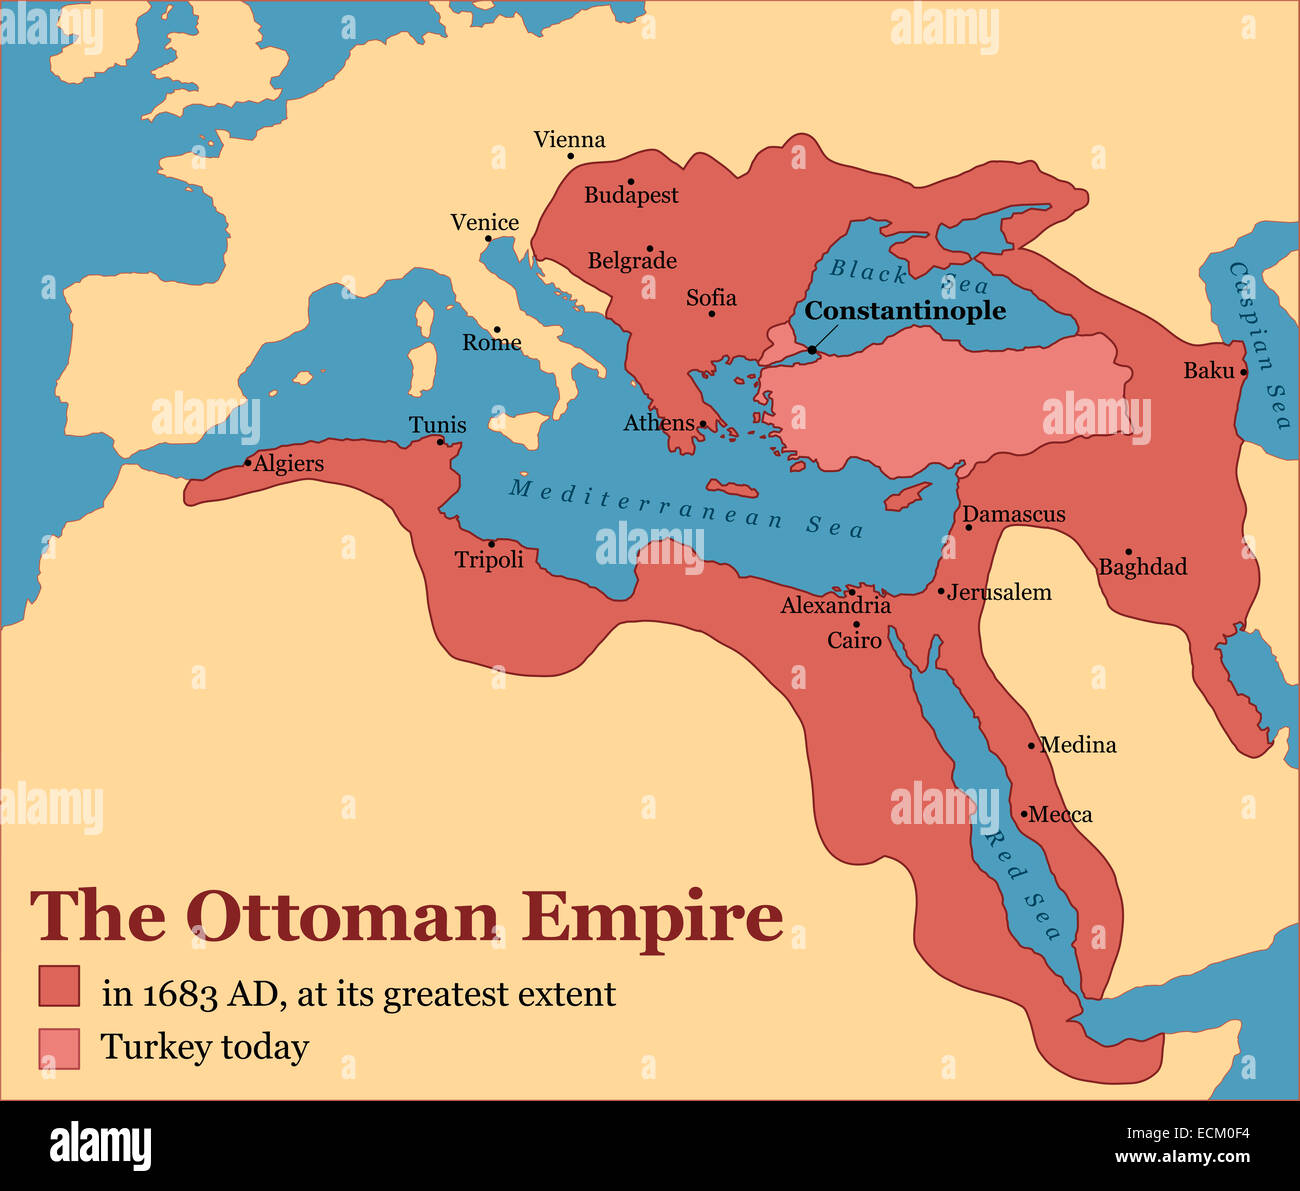 The Ottoman Empire at its greatest extent in 1683 and Turkey today  sc 1 st  Alamy & The Ottoman Empire at its greatest extent in 1683 and Turkey ...